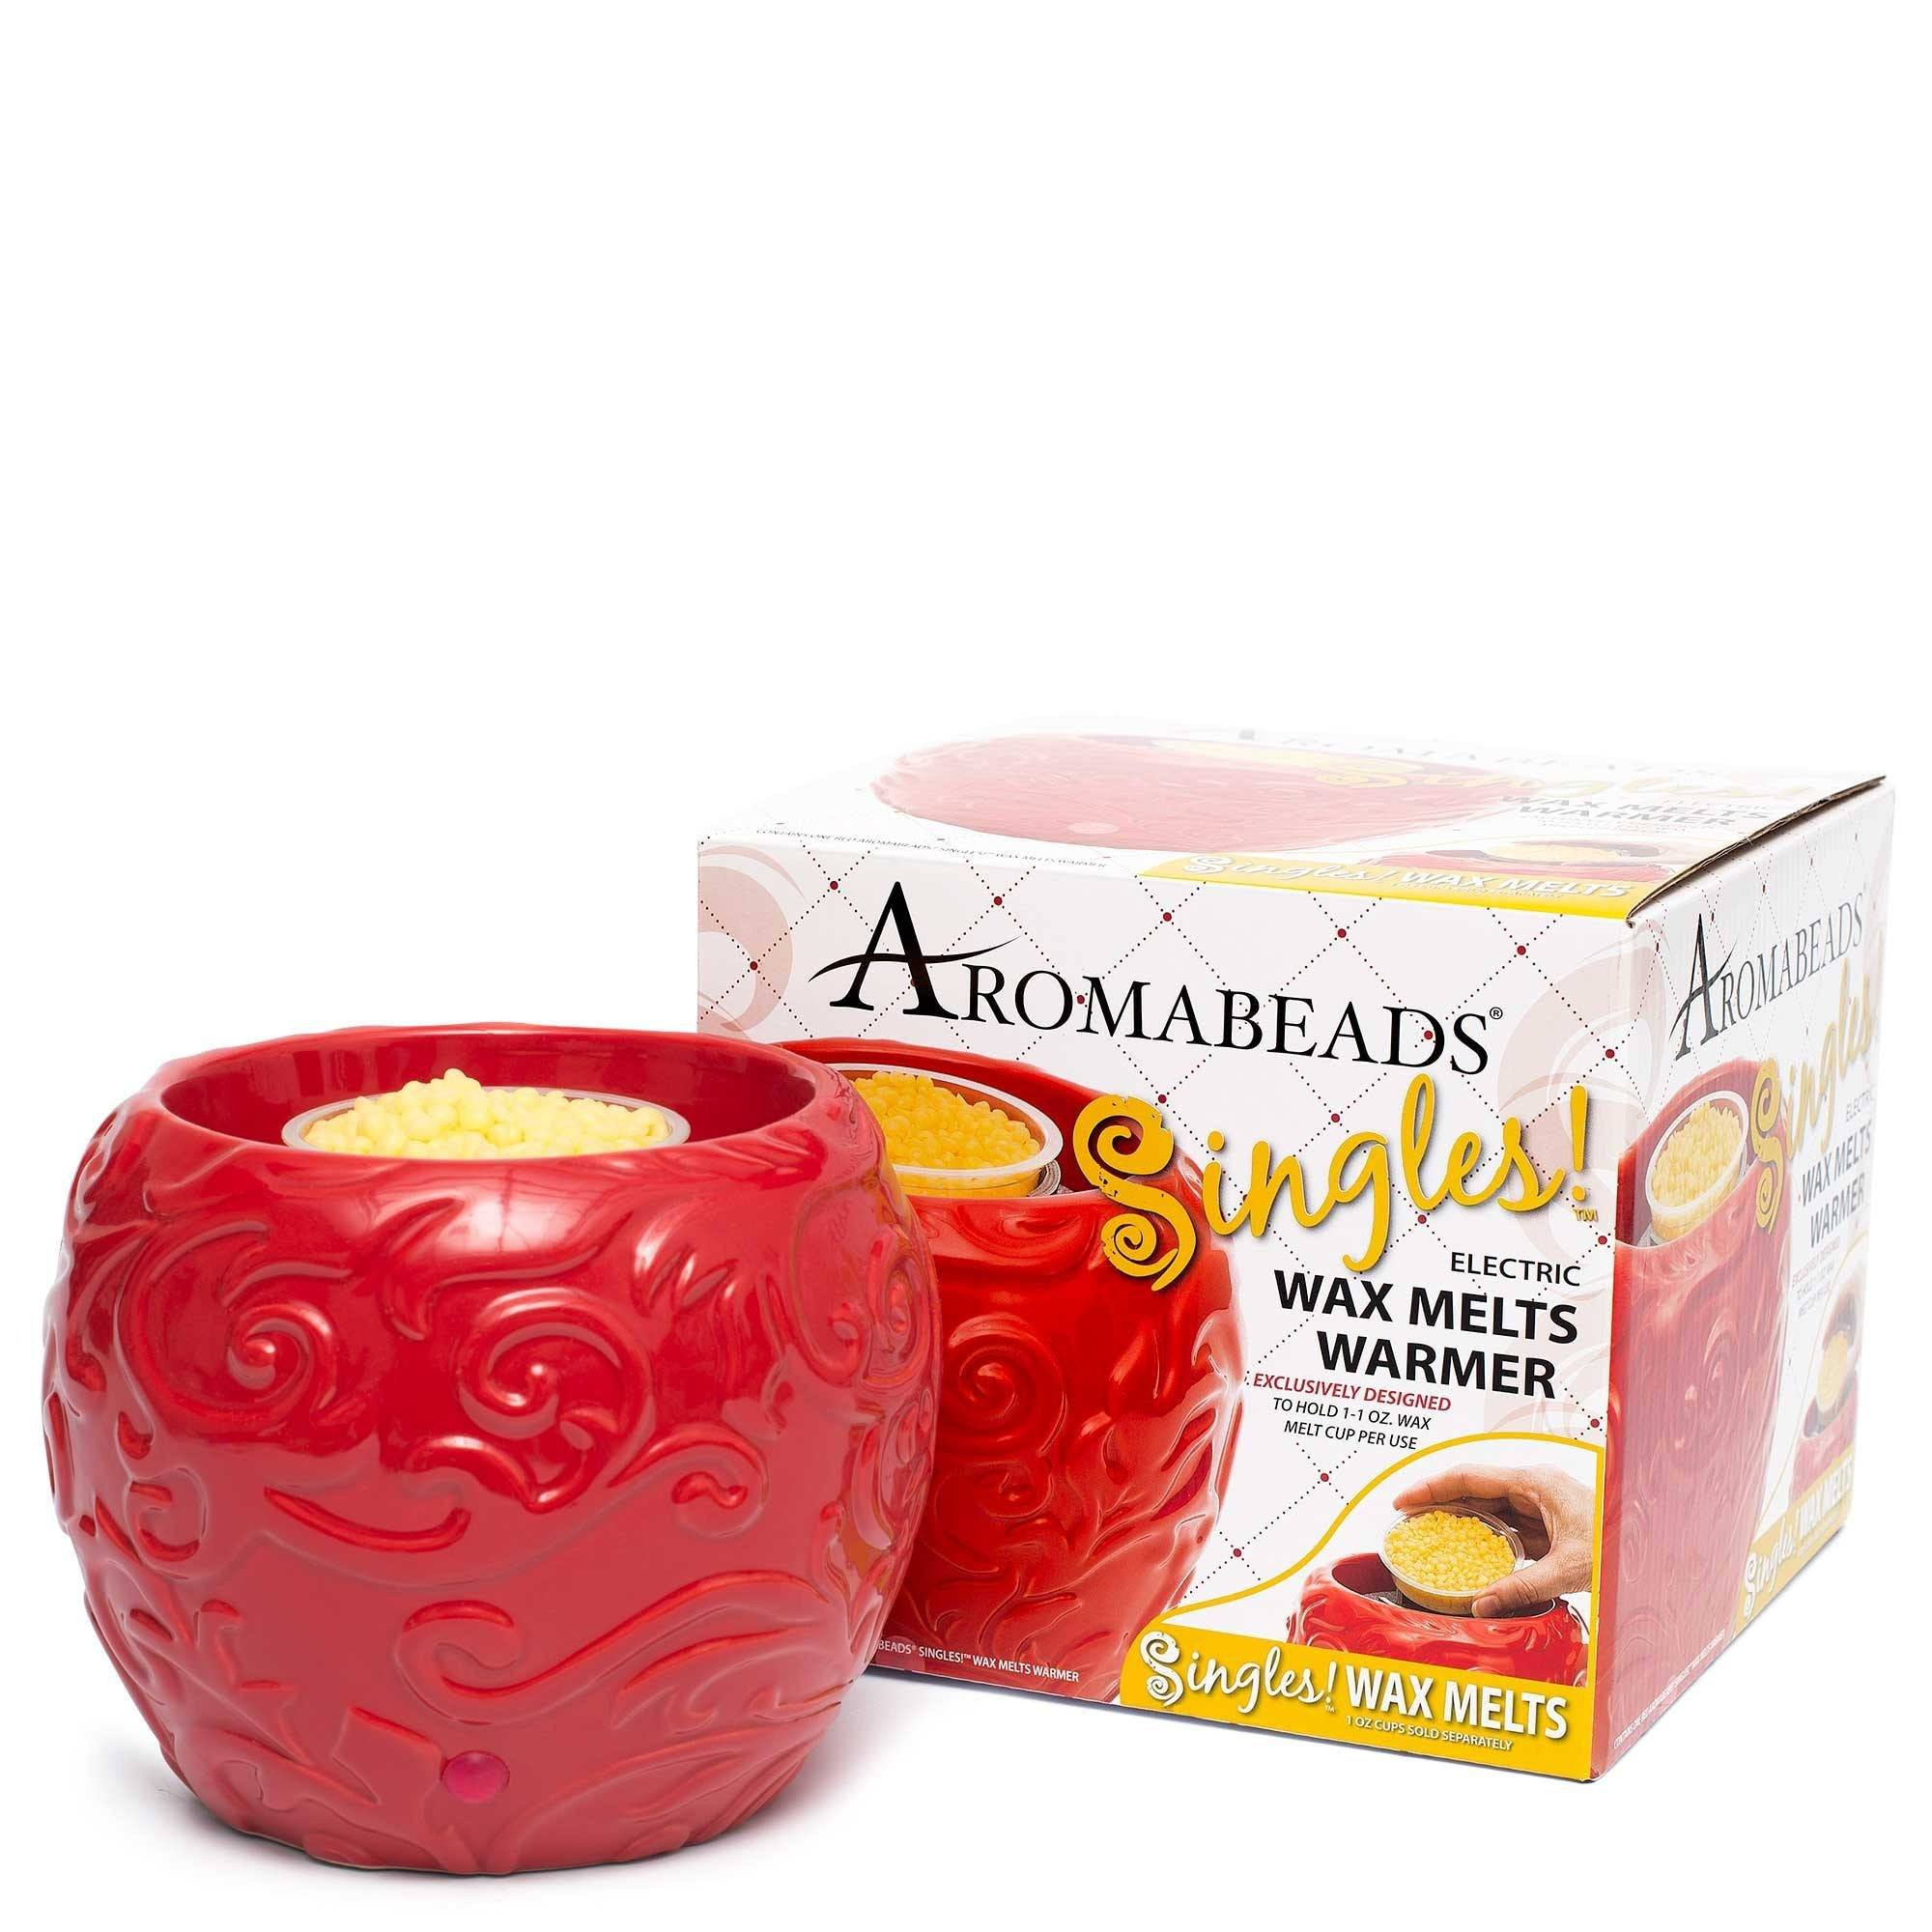 Aromabeads Singles Cashmere Musk Wax Melts 10 pack Melts Candlemart.com $ 11.49